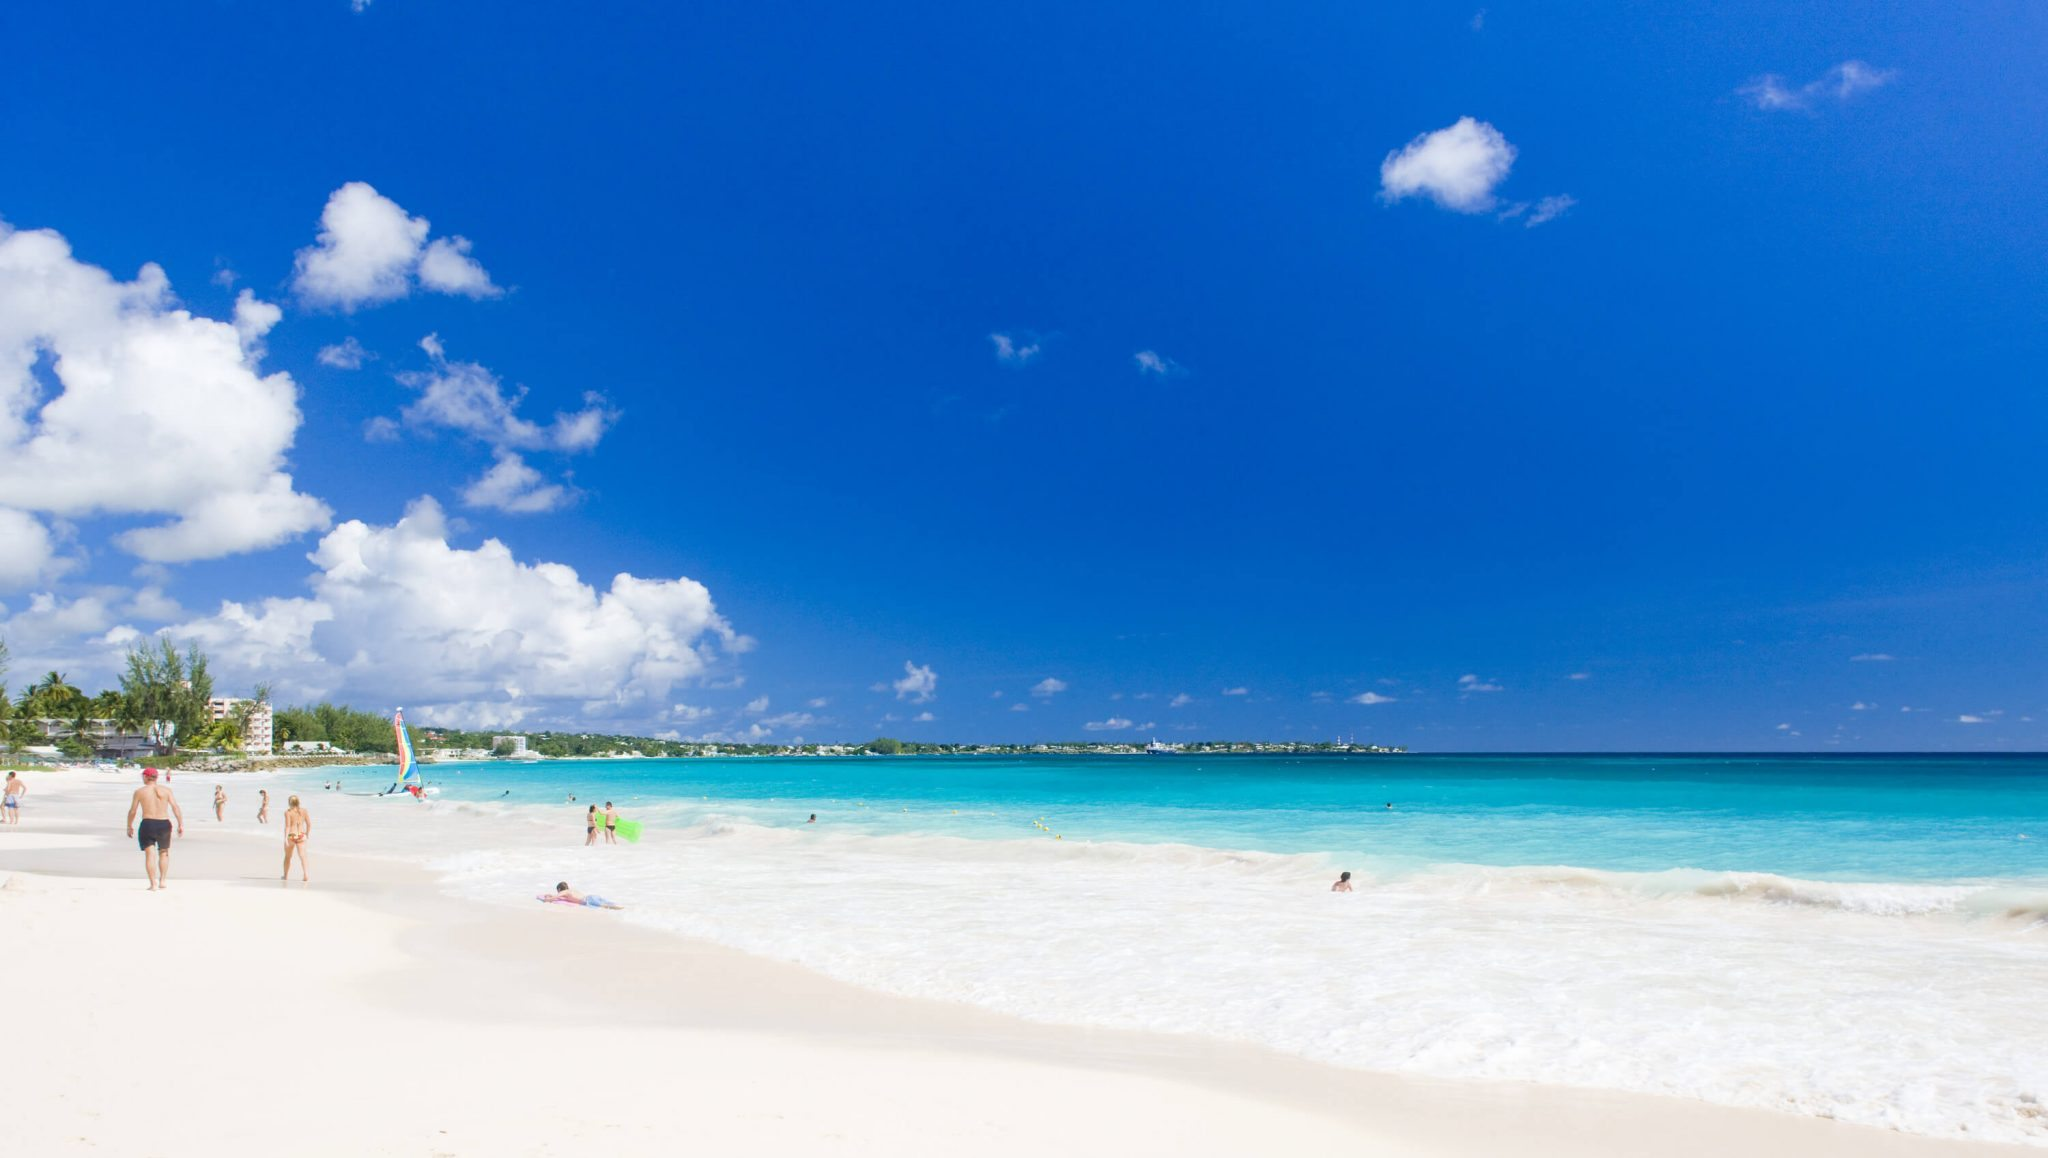 Tourists relax on the beach in Barbados